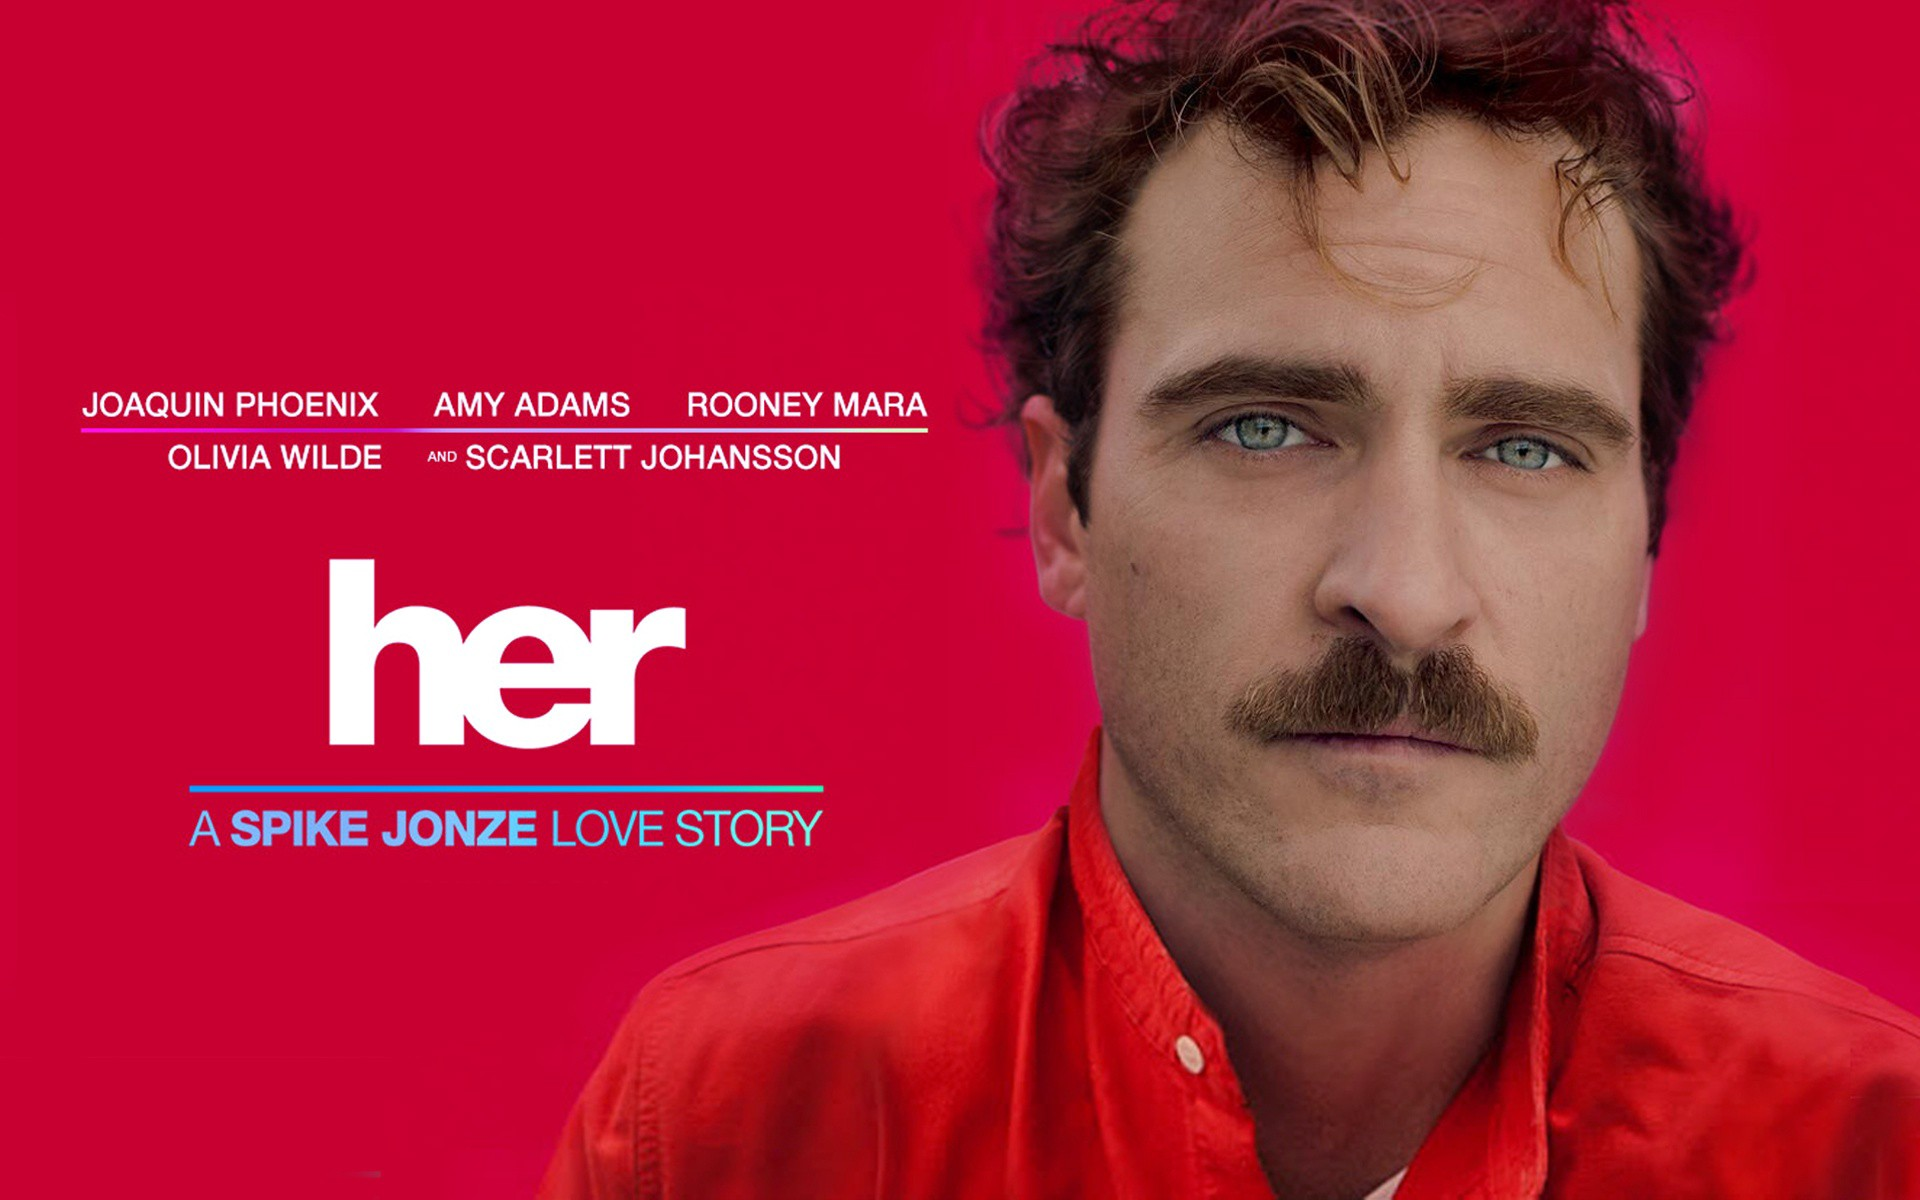 A horizontal version of the movie poster for 'her'.